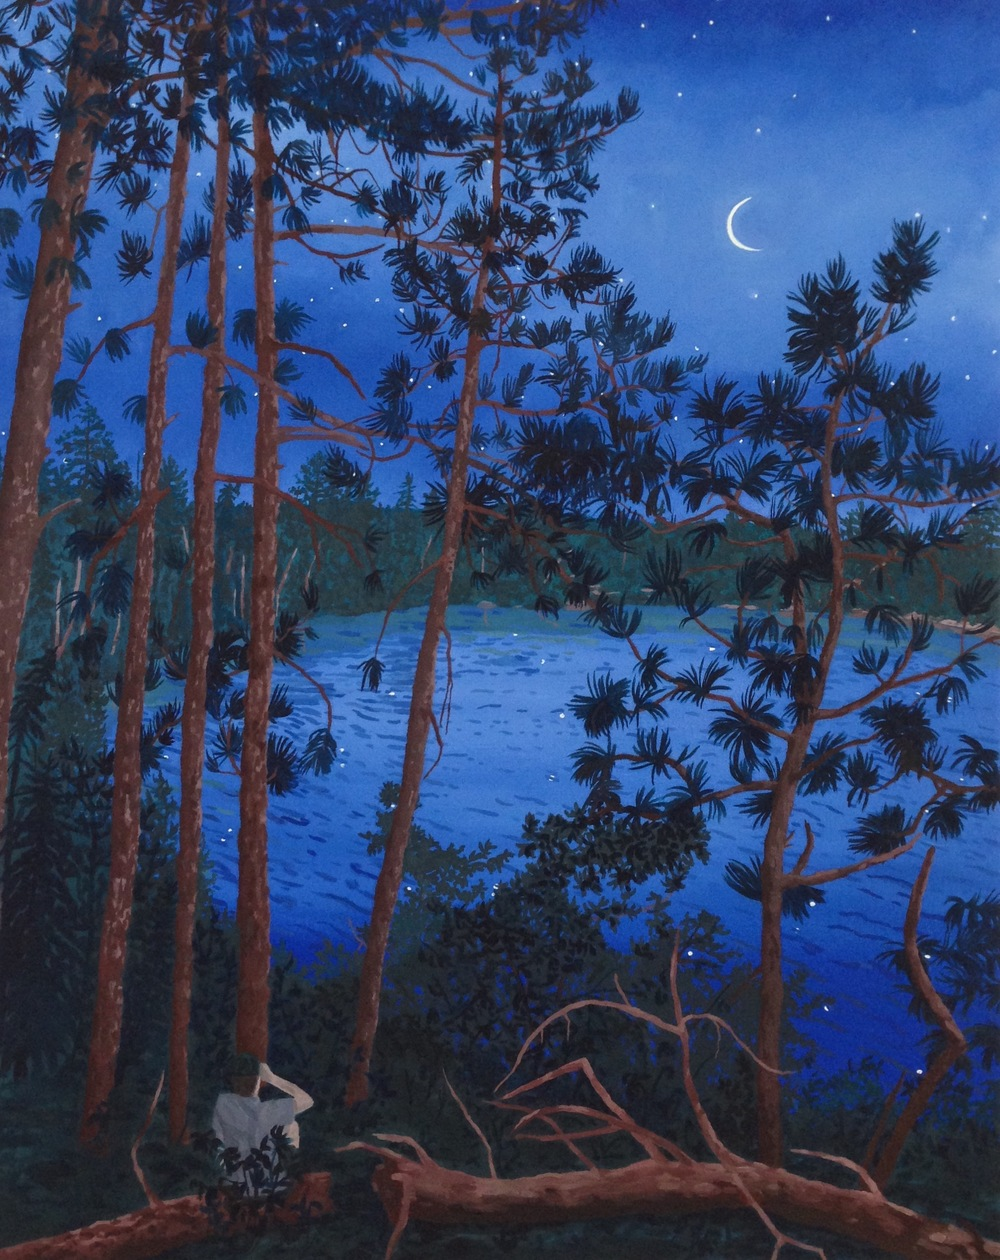 Breehan James, Stargazing on Ester Lake, oil on canvas, 24x30 inches